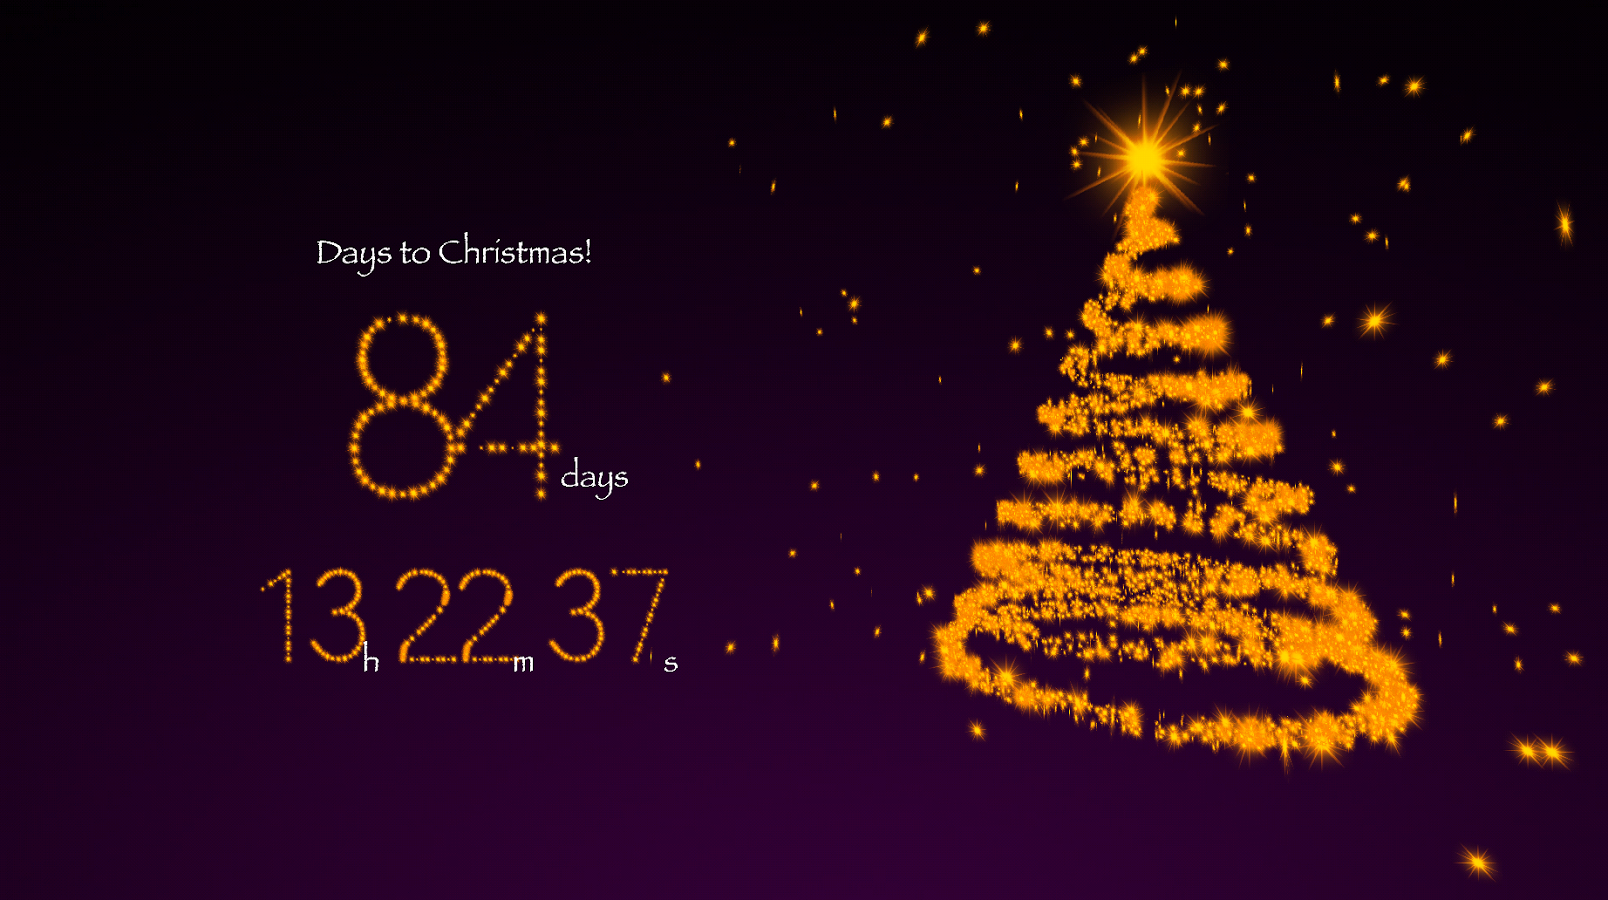 3D Christmas Countdown 2016 Android Apps on Google Play 1608x900